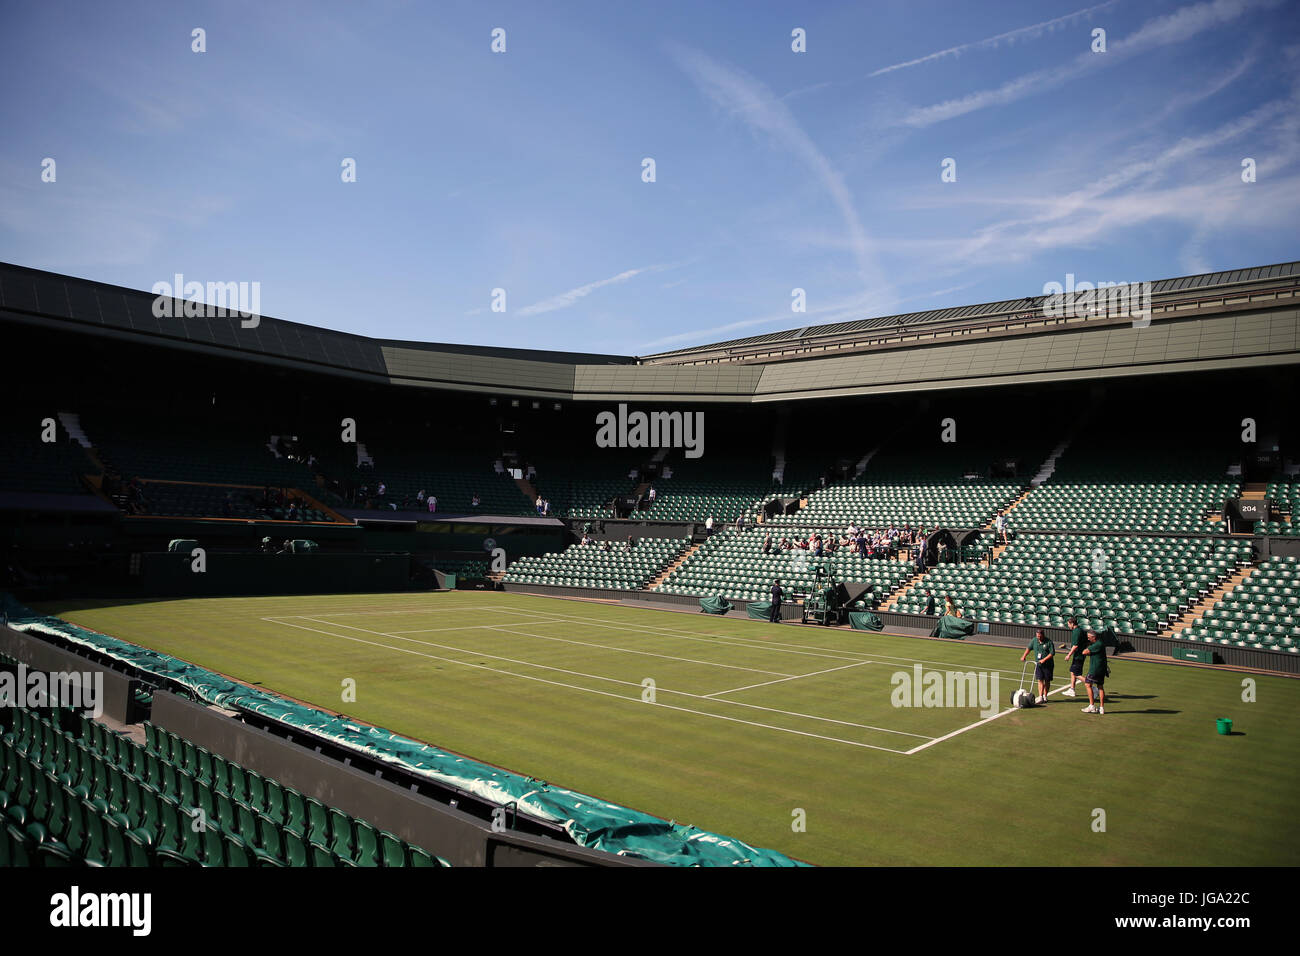 new styles 98eb6 fce4c Ground staff prepare centre court on day three of the Wimbledon  Championships at The All England Lawn Tennis and Croquet Club, Wimbledon.